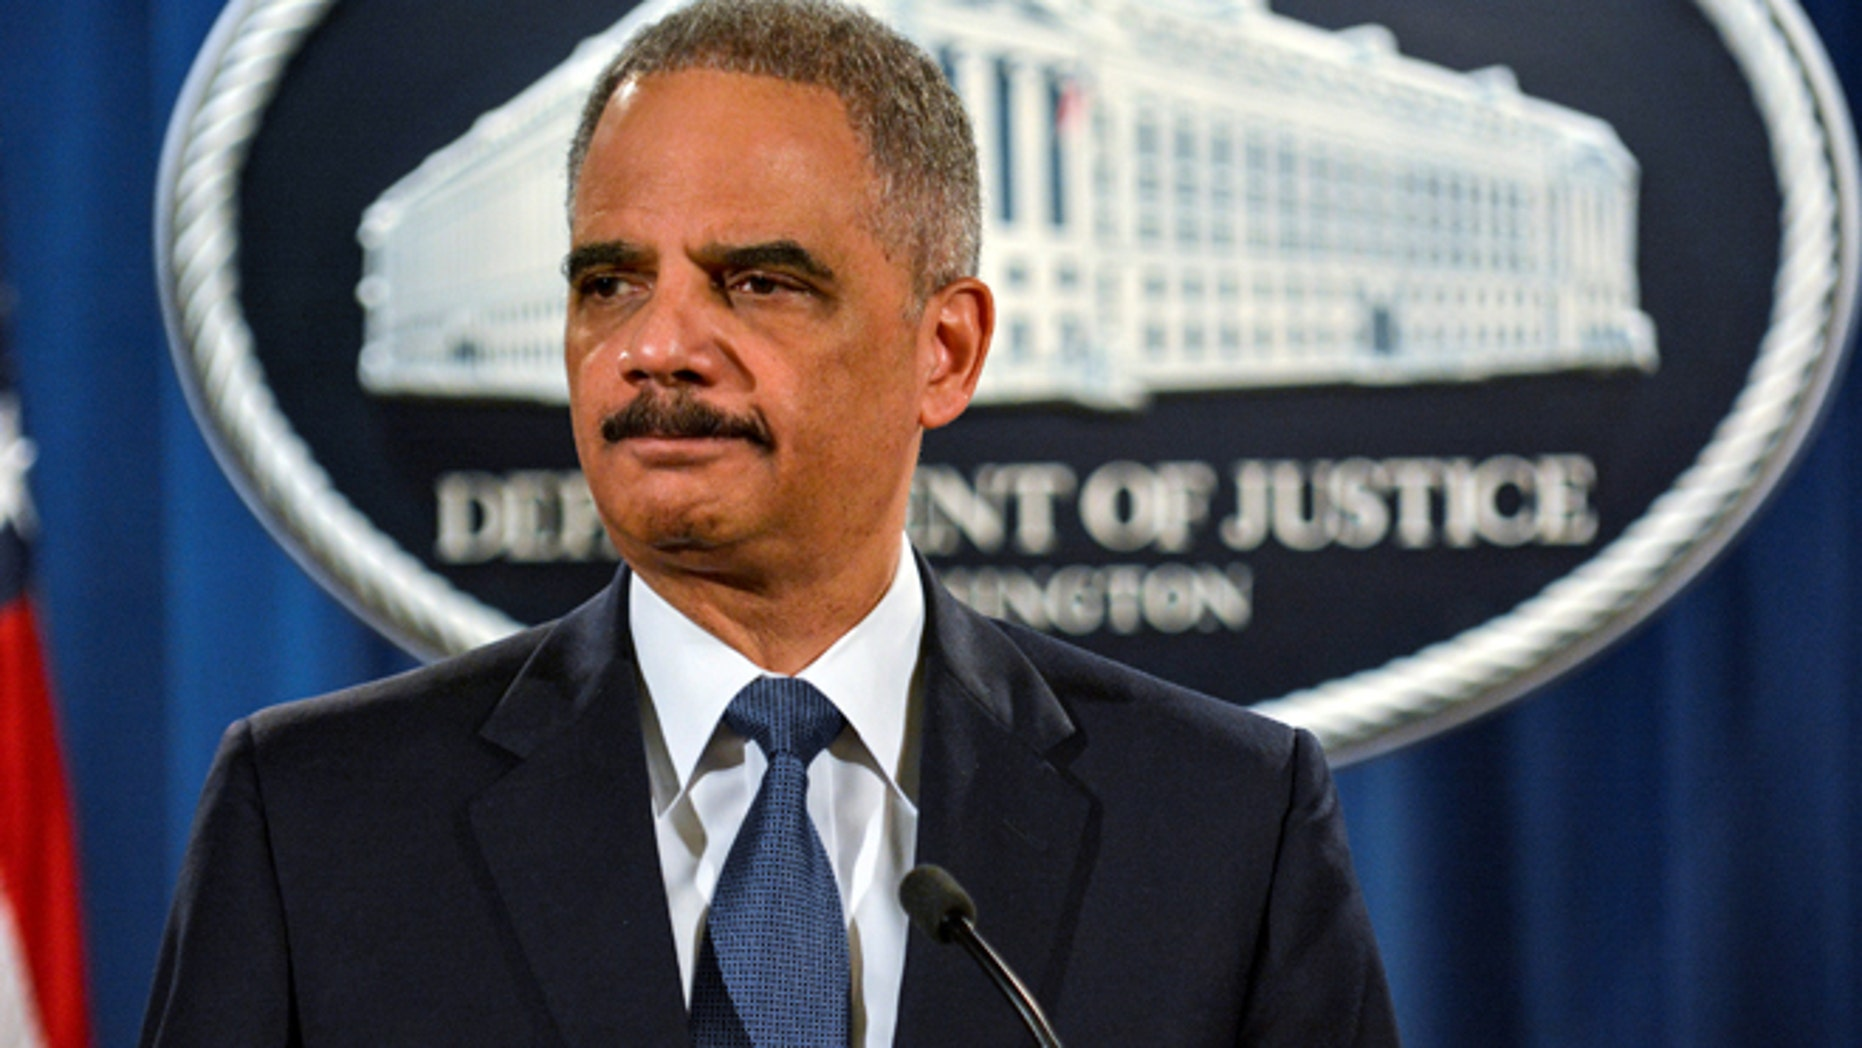 While Eric Holder was attorney general, the Justice Department allowed prosecutors to strike agreements compelling big companies to give money to outside groups not connected to their cases to meet settlement burdens.